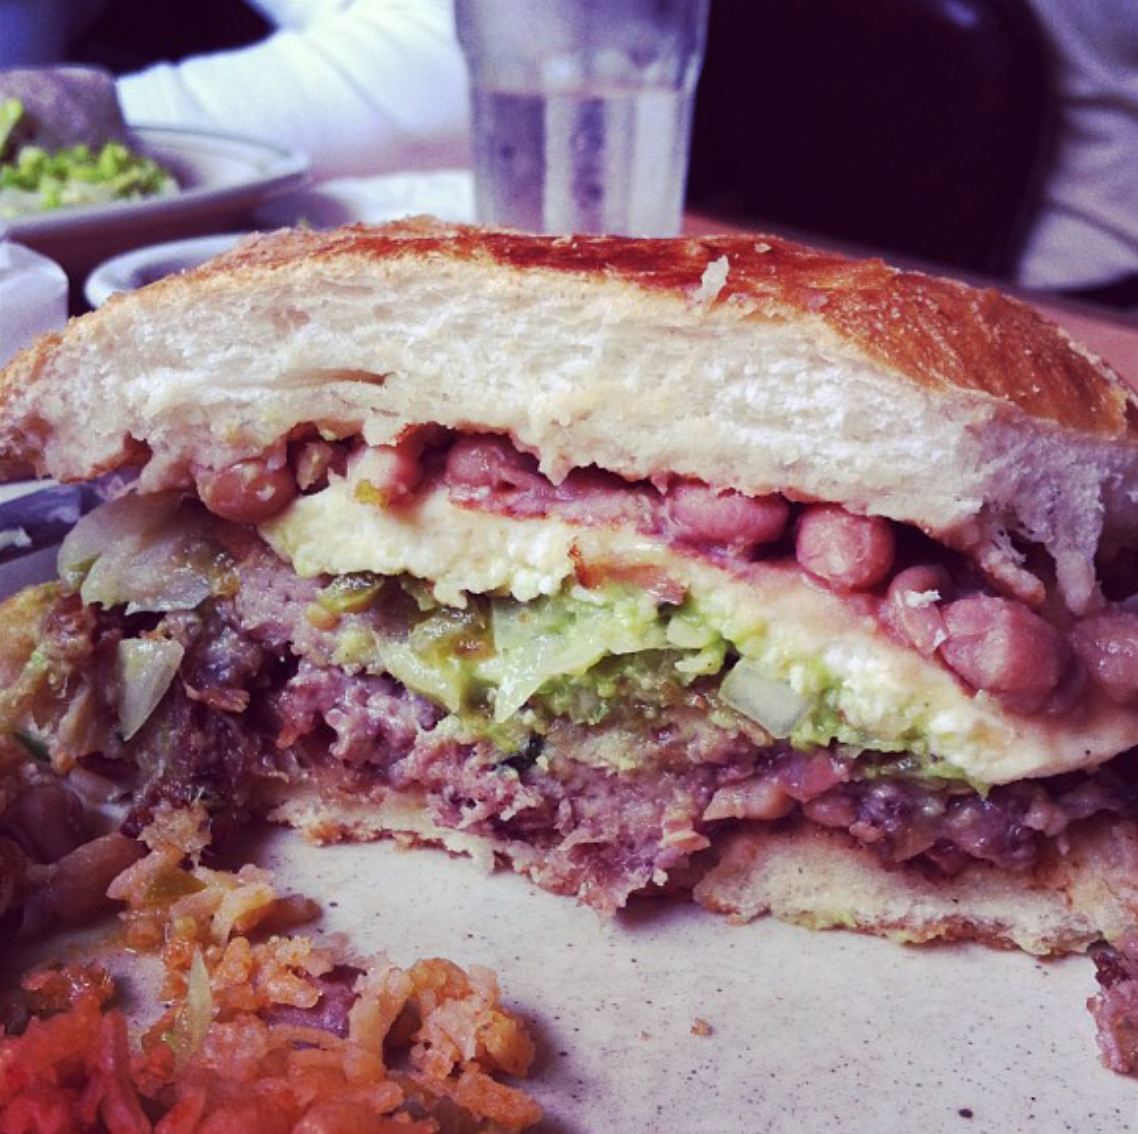 torta sandwich from Libby's, Philo, CA